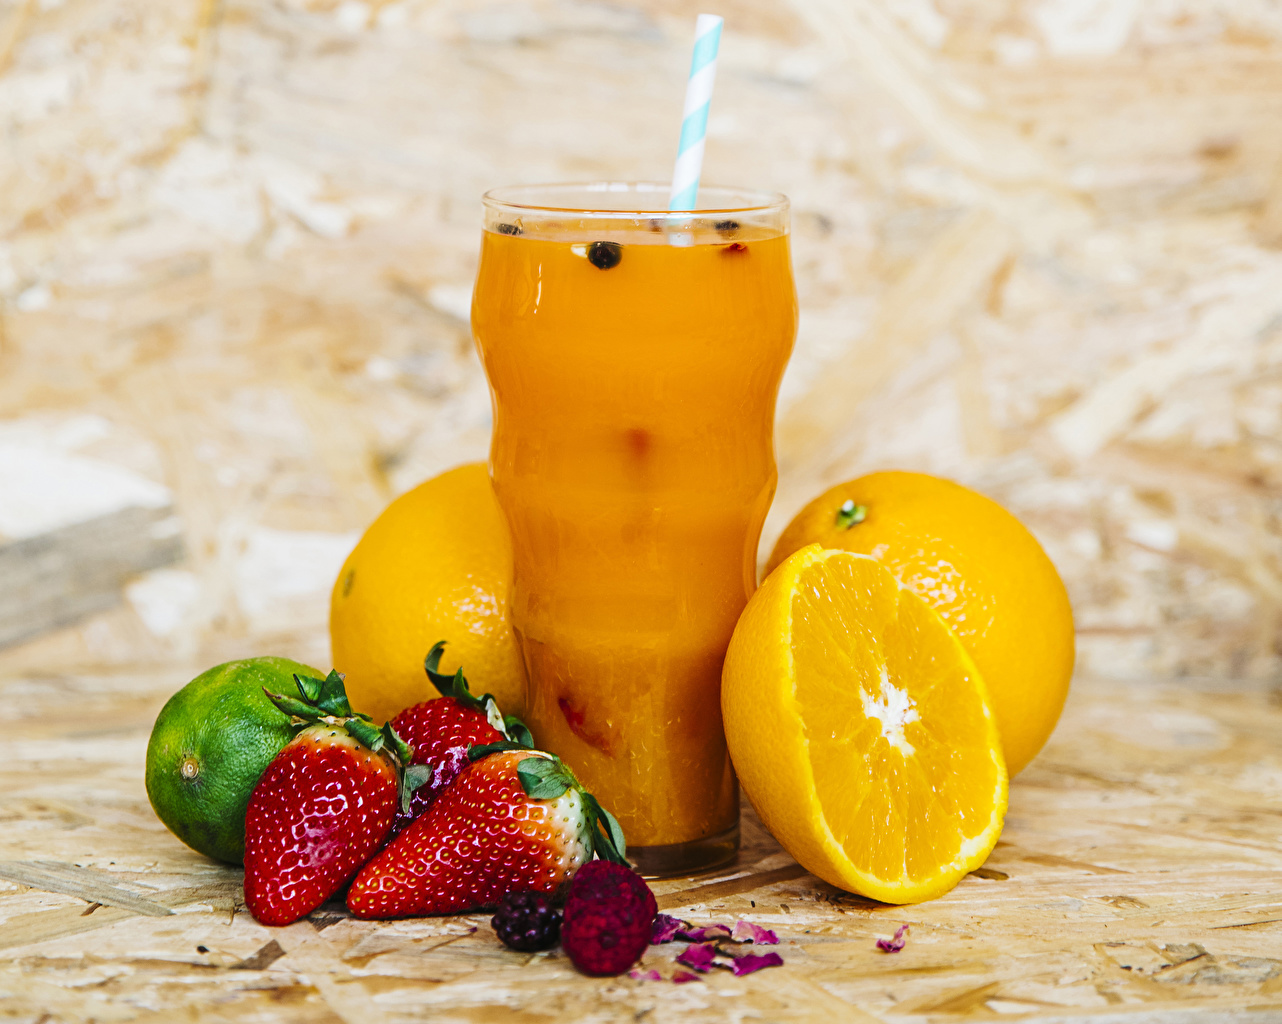 Pictures Juice Orange fruit Strawberry Highball glass Food